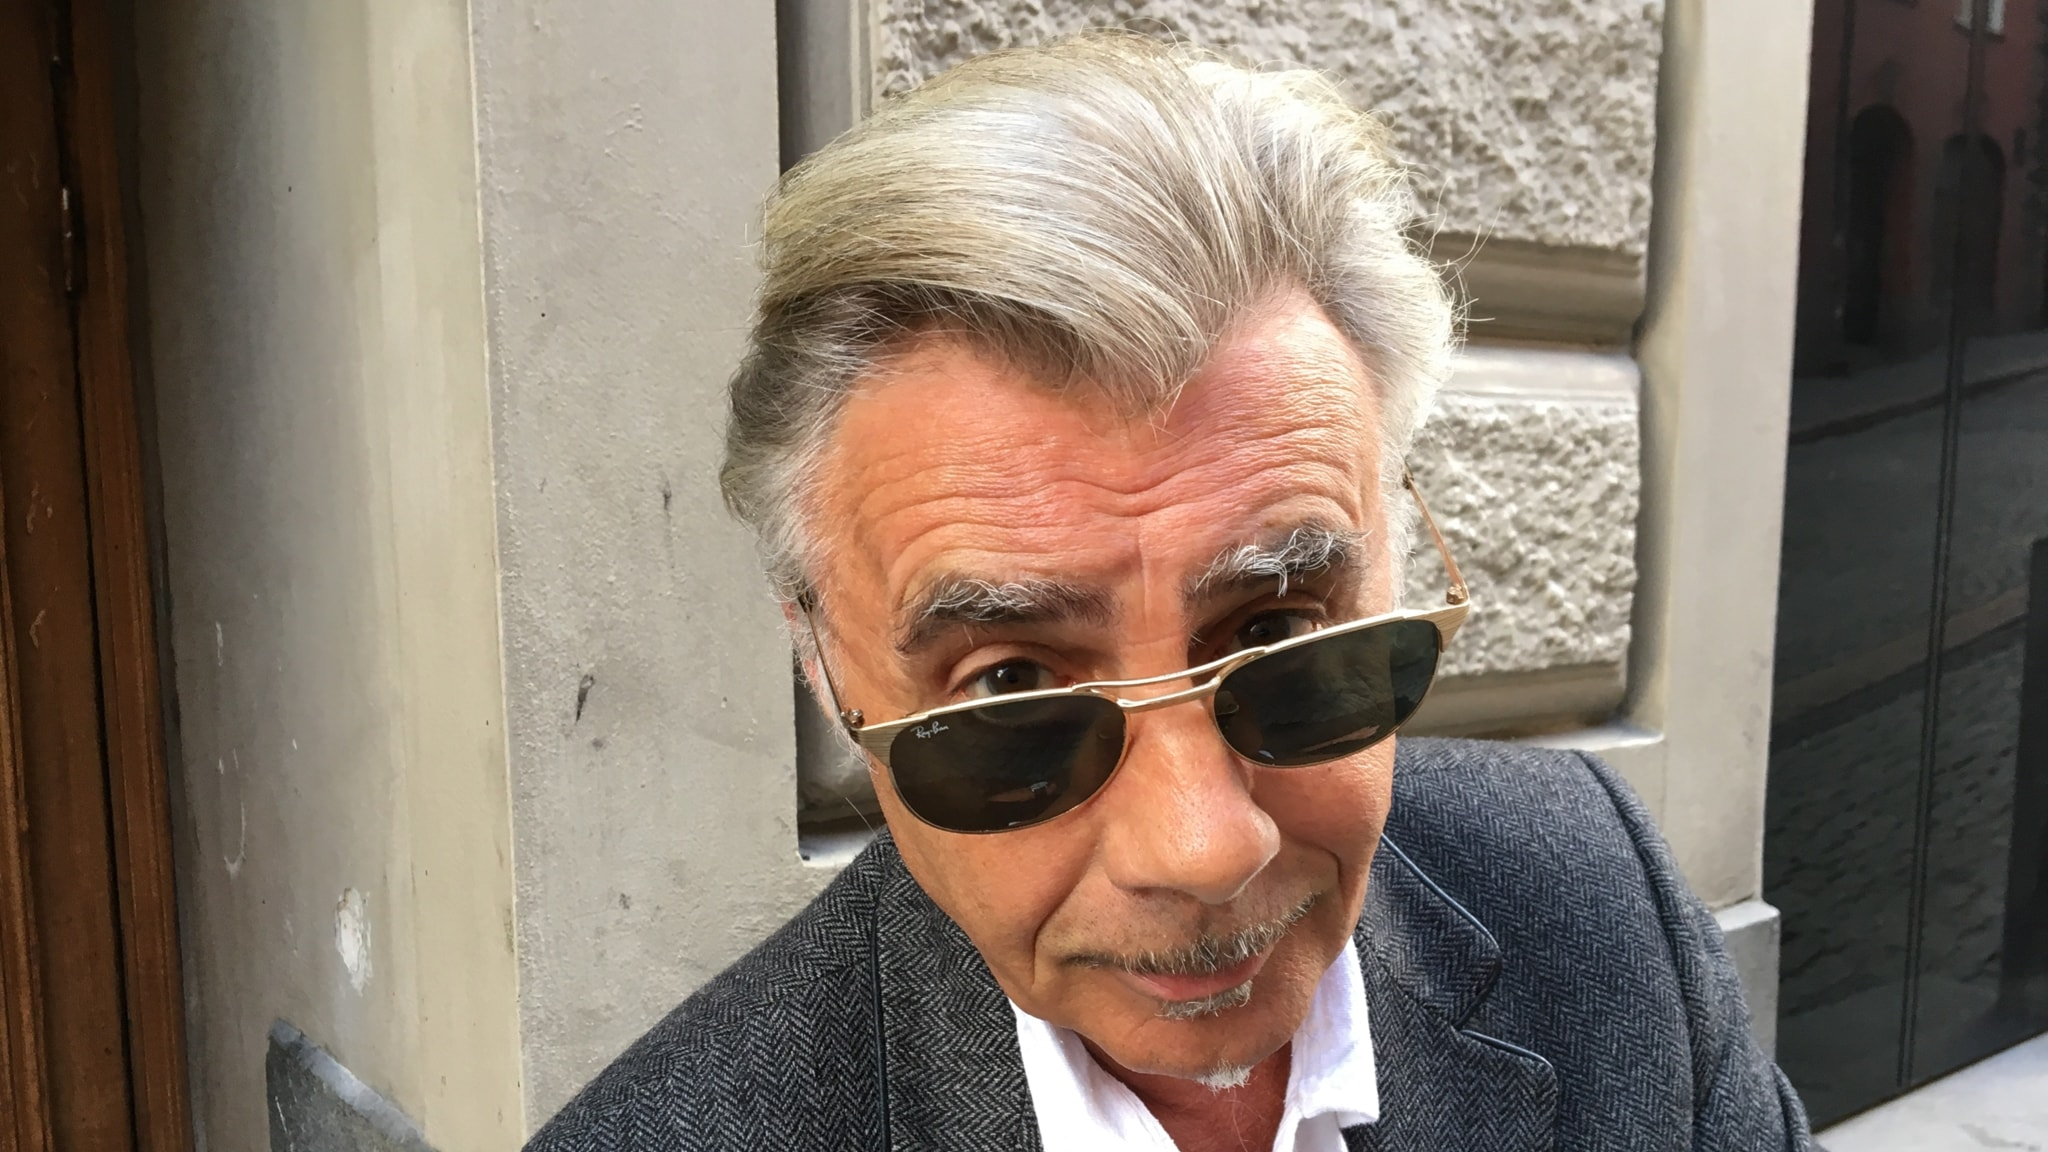 Glen Matlock: Revisiting the past with an eye to the future